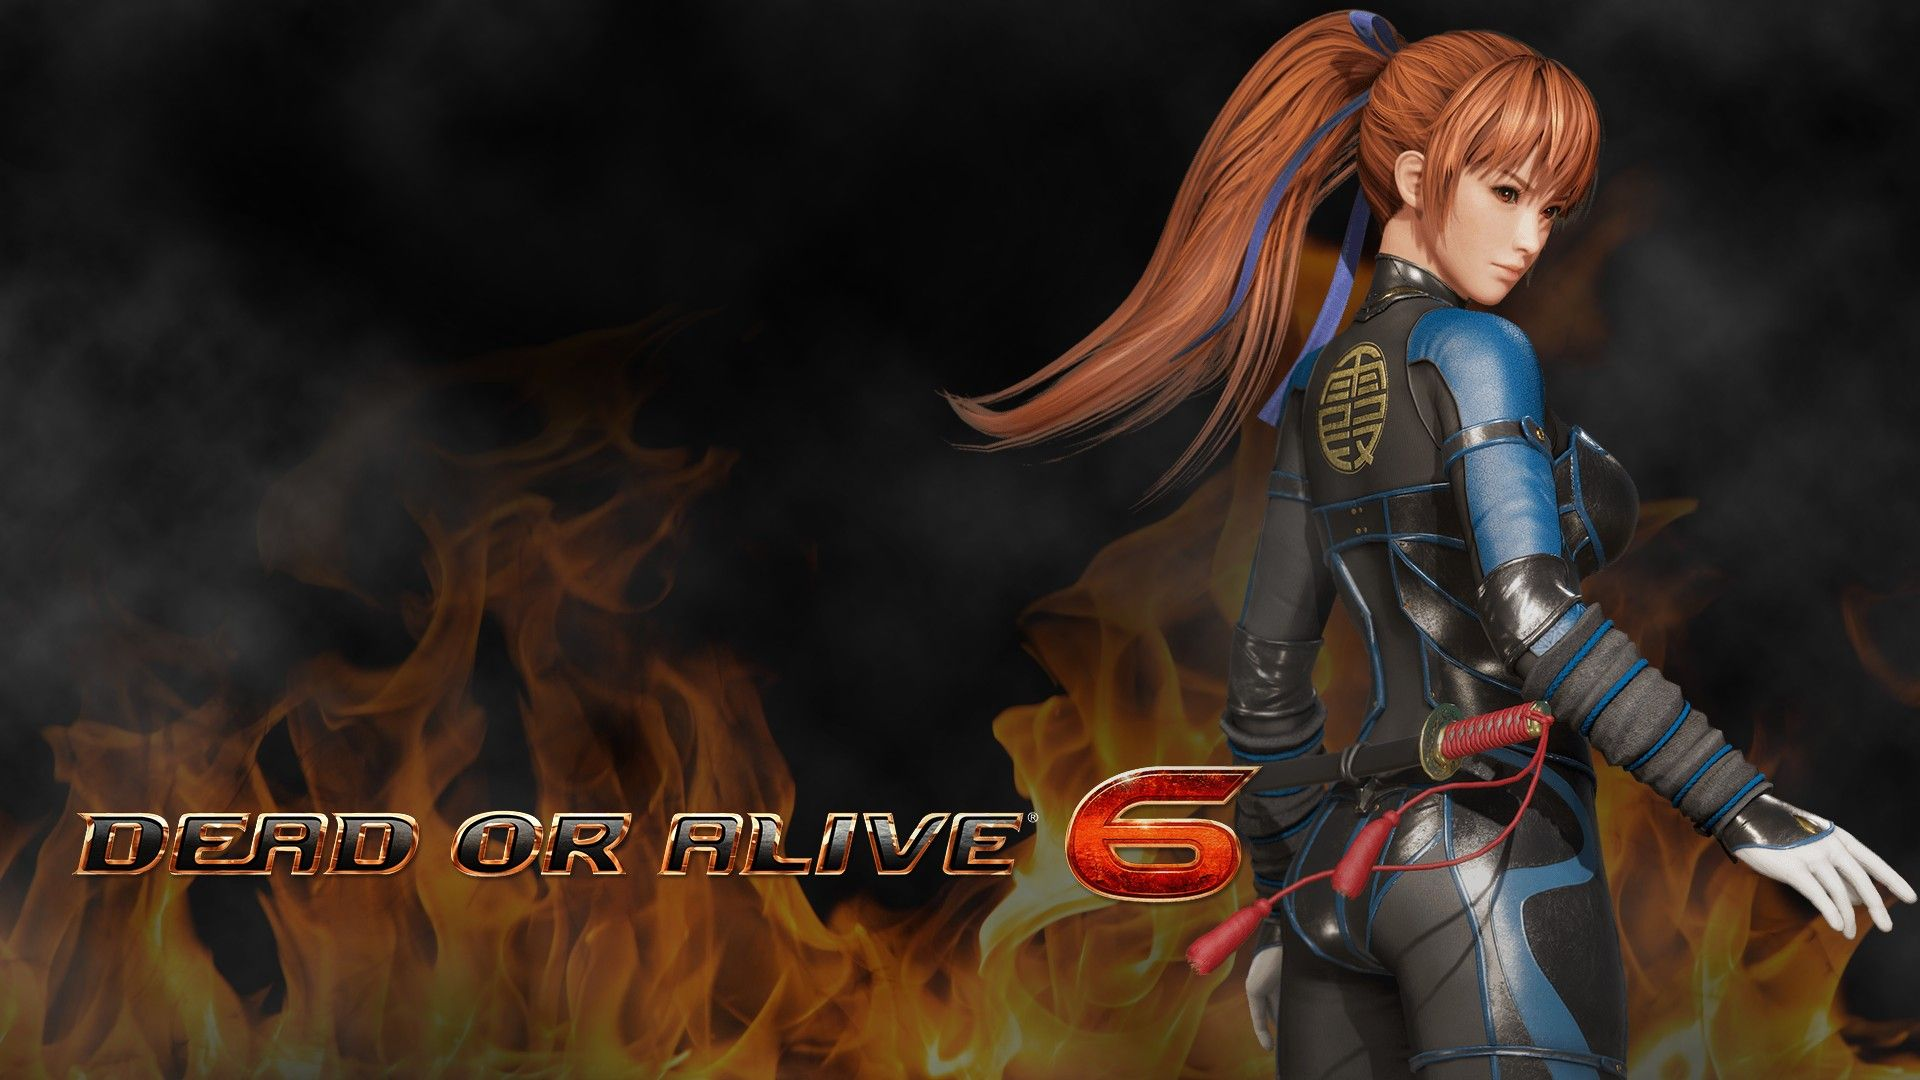 Pin By Diego Valle On Doa 6 Ps4 Wonder Woman Superhero Character